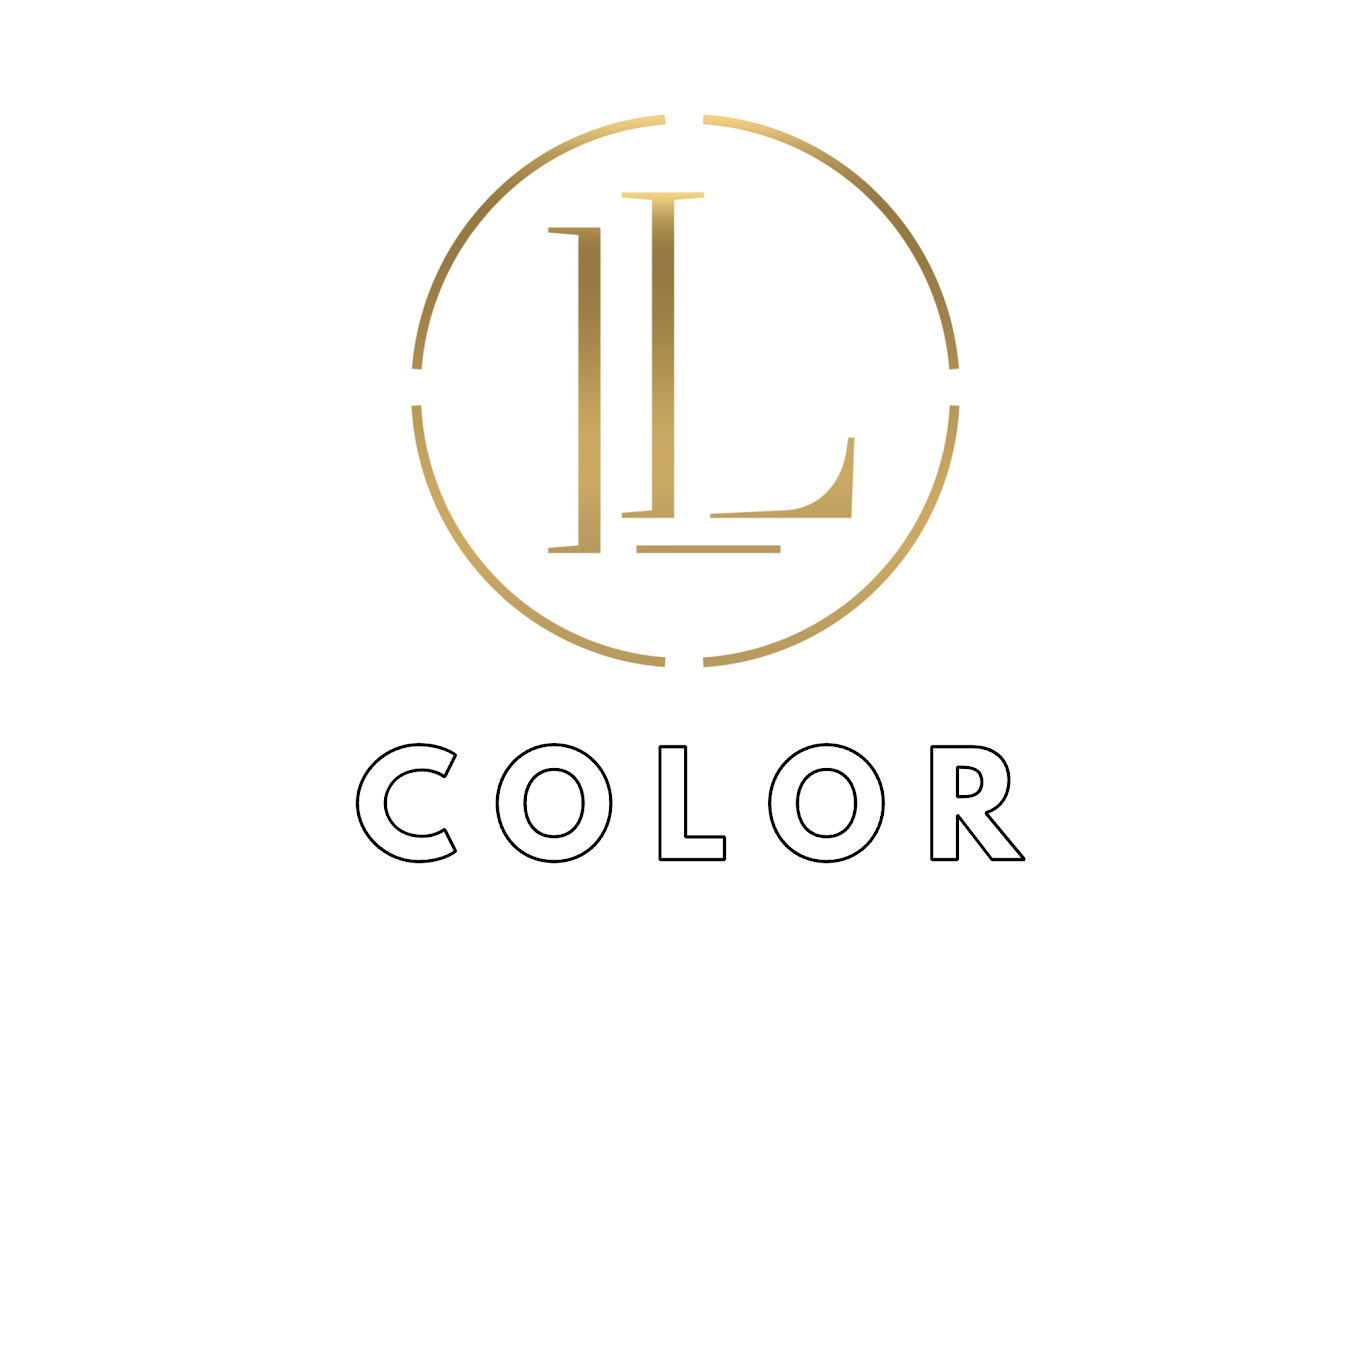 - Gloss | 65+Color Melt or Full Color | 100+Retouch | 55+Corrective Color | 125 per hour (consult required)*Add On Gloss w/ any color service | 30*Add On a Haircut & Blow Dry | 55*Add On a Blow Dry or Waves | 45*Larissa Lake and Co. reserves the right to increase all rates due to density, length & experience